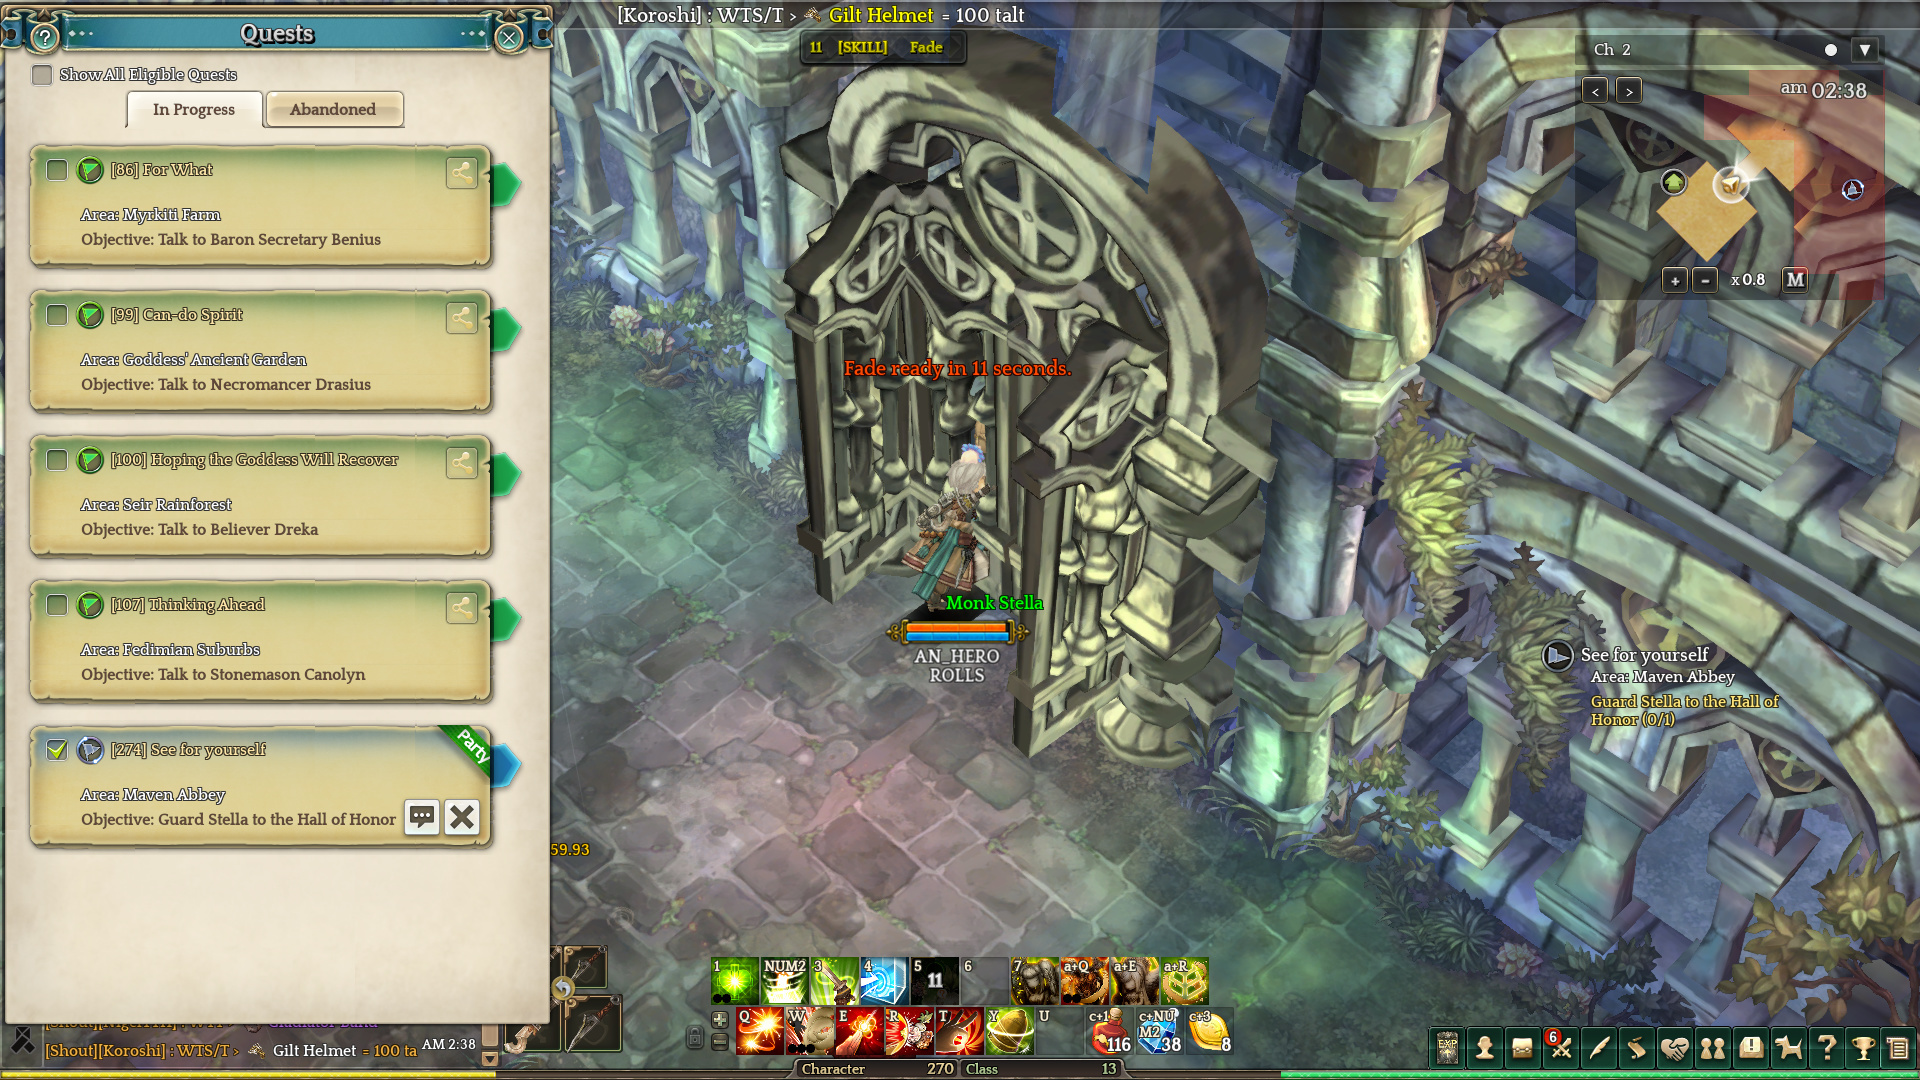 blob.jpg1920x1080 950 KB & Maven Abby Door both Open and Closed - Game Content - Tree of Savior